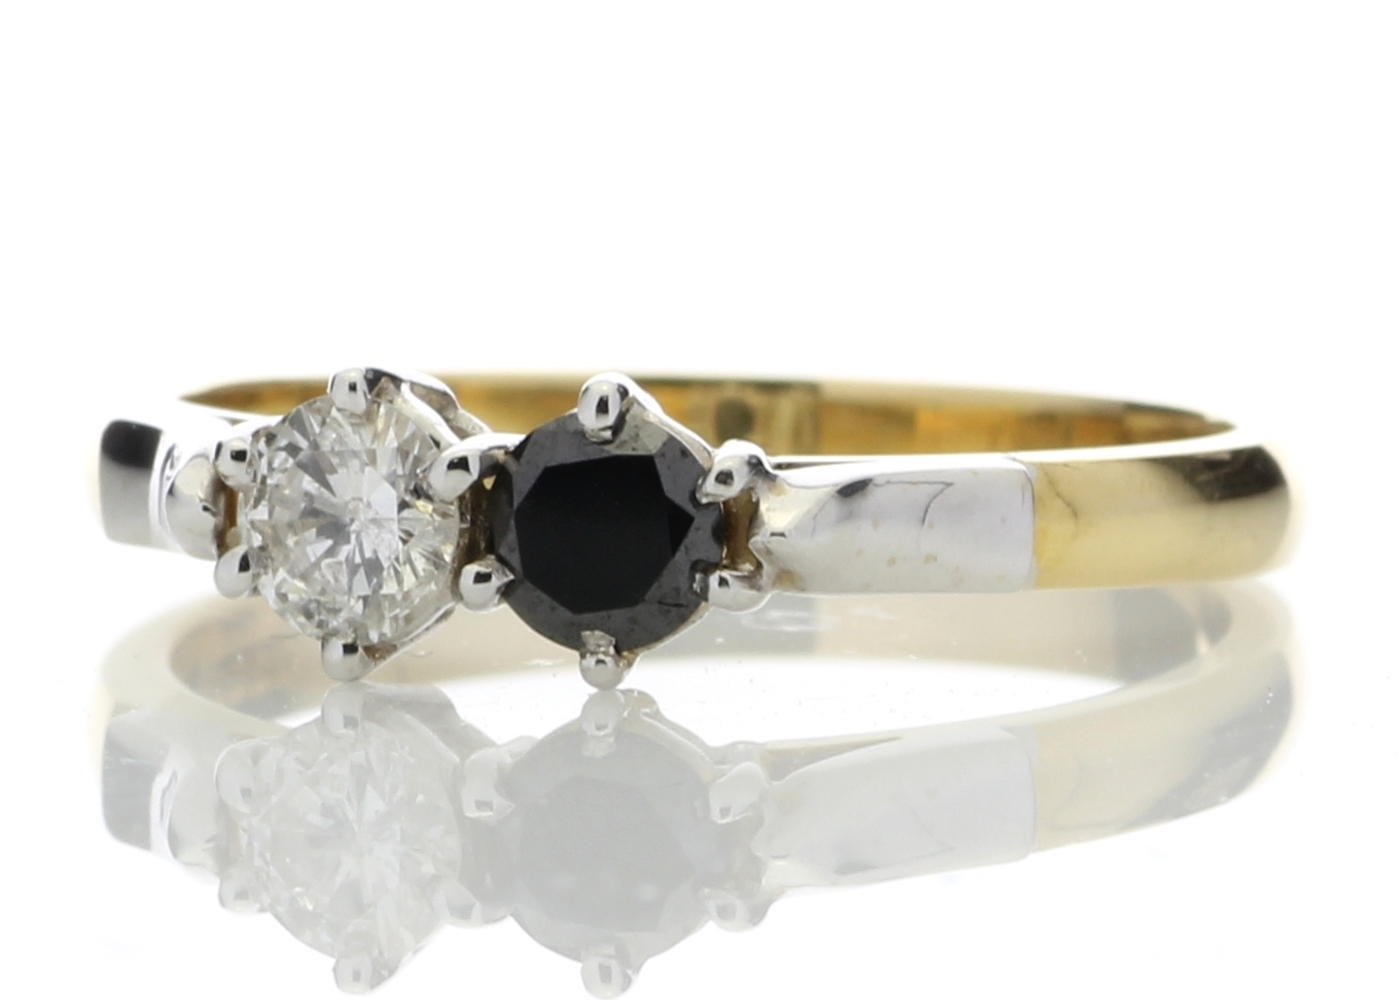 18ct Two Stone Claw Set Diamond With Black Treated Stone Ring 0.50 Carats - Image 2 of 4